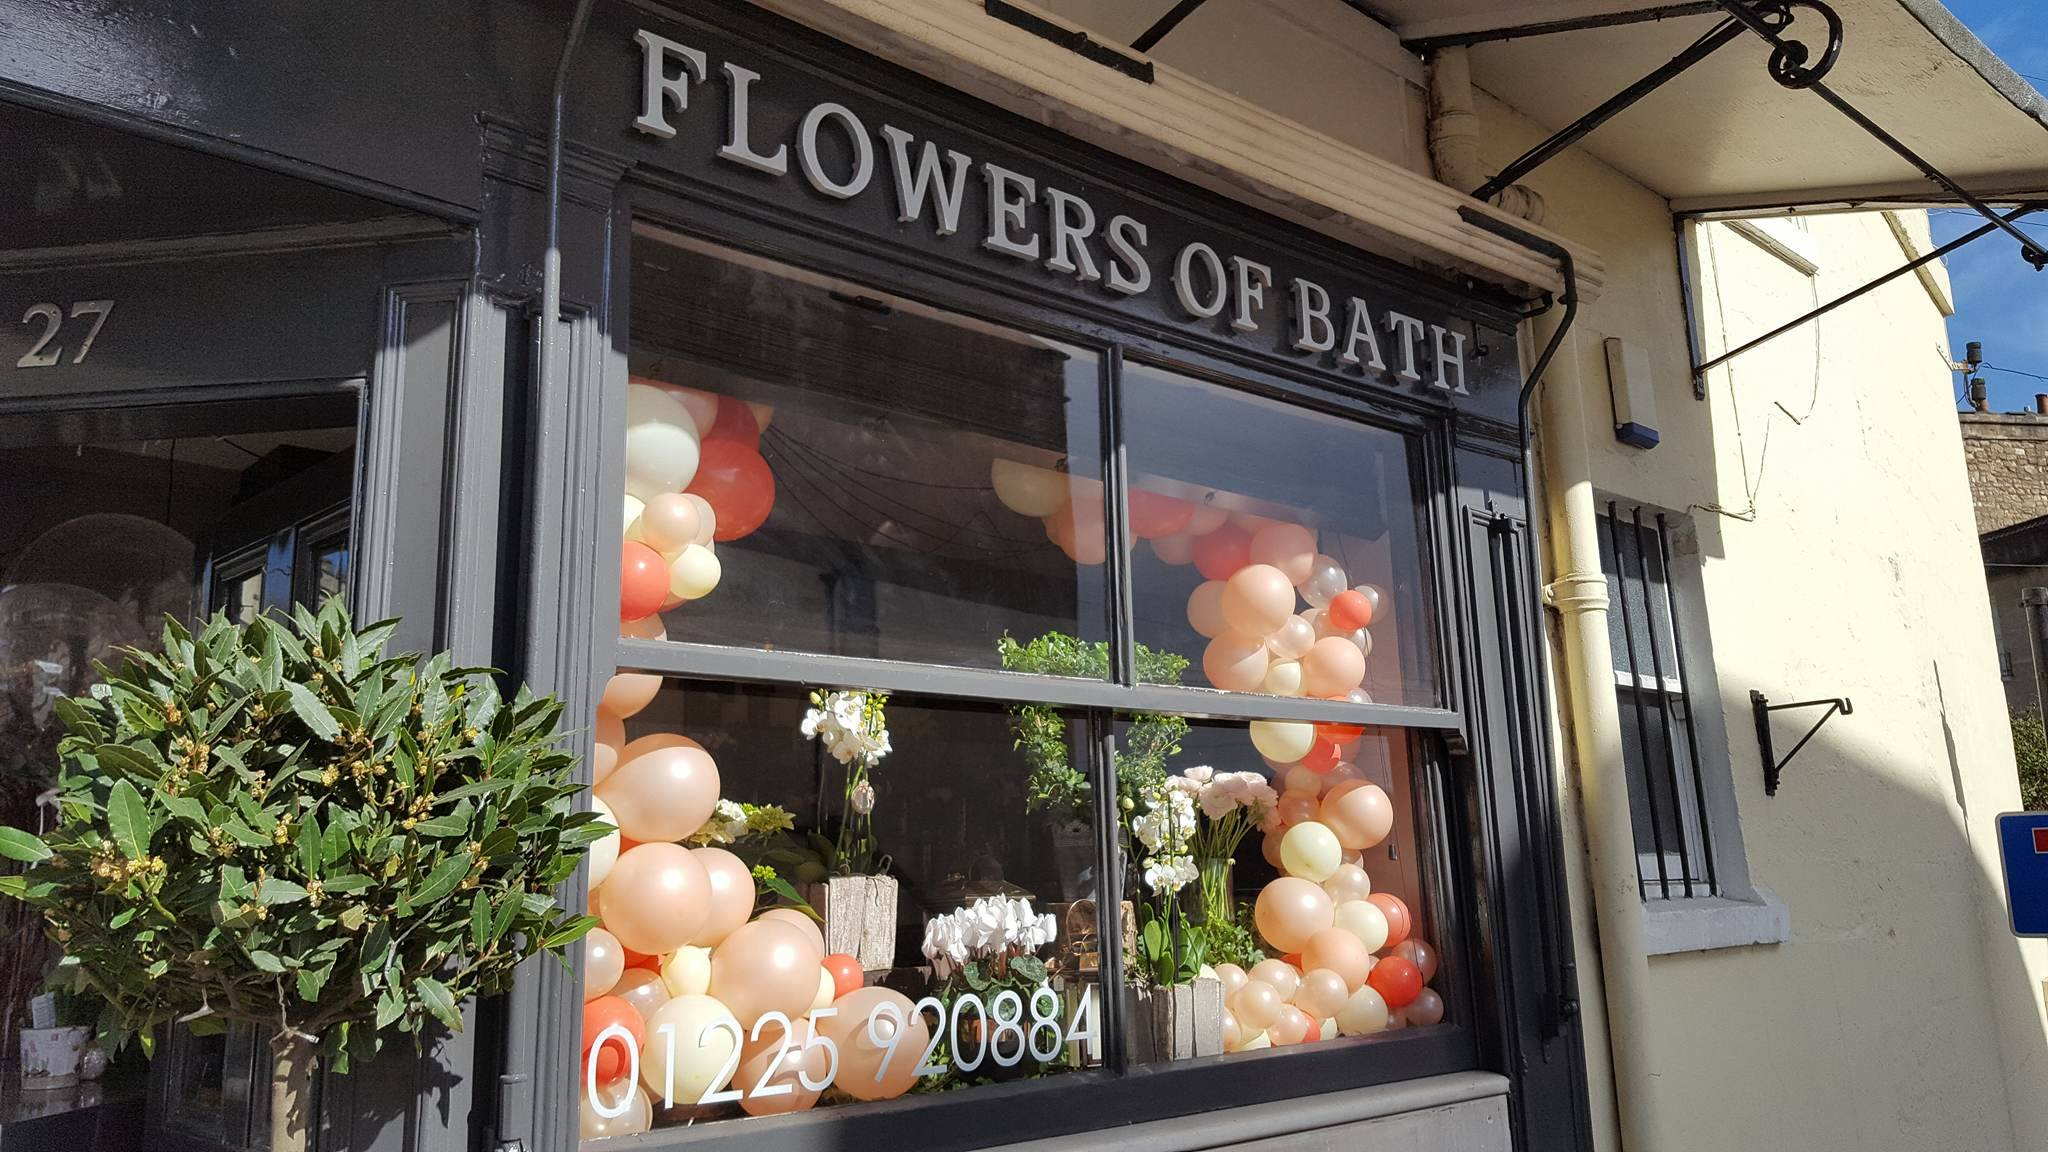 flowers of bath